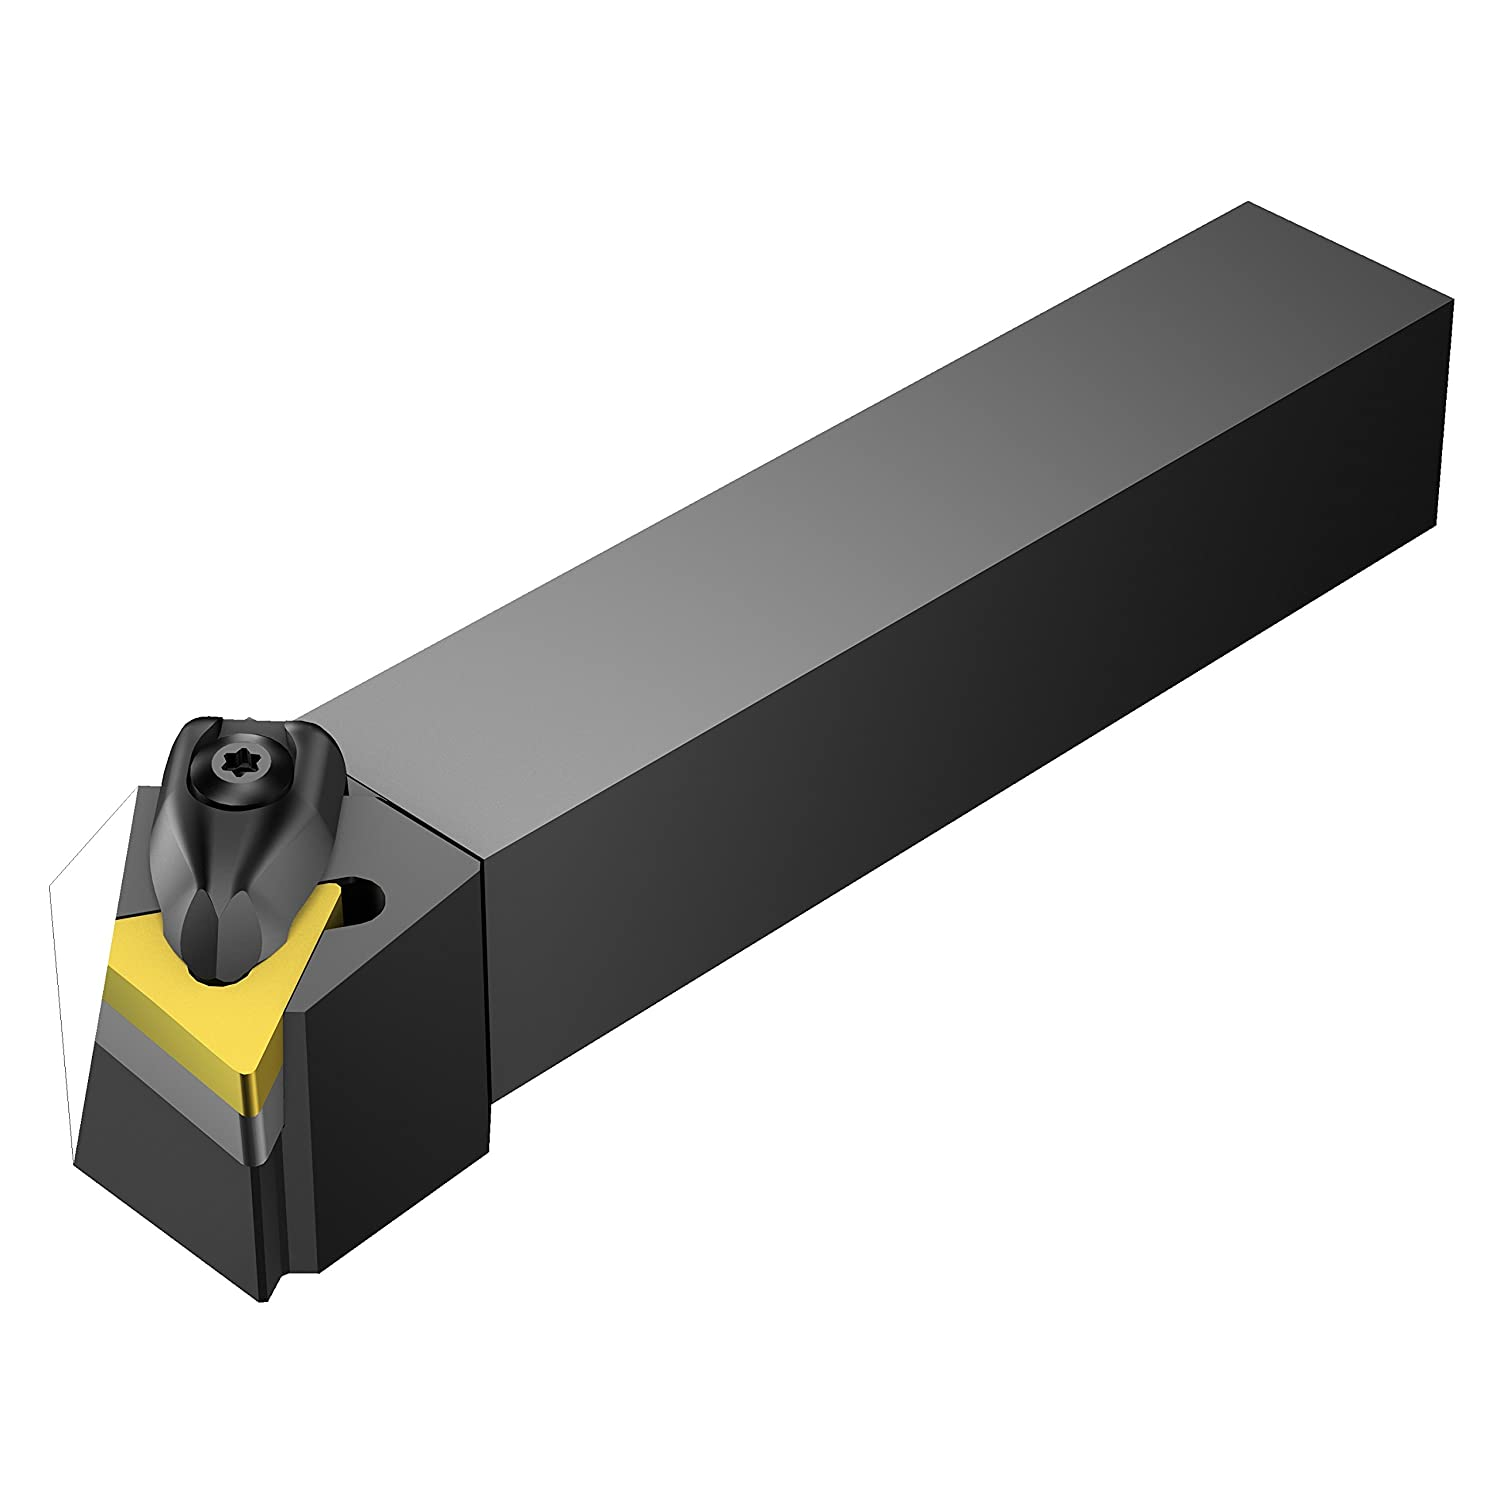 Radially Turning Insert Holder 150mm Length x 32mm Width Sandvik Coromant DTFNL 2525M 16 Facing Left Hand External Rigid Clamp Square Shank 25mm Width x 25mm Height Shank TNMG 332 Insert Size Steel Turning toward center